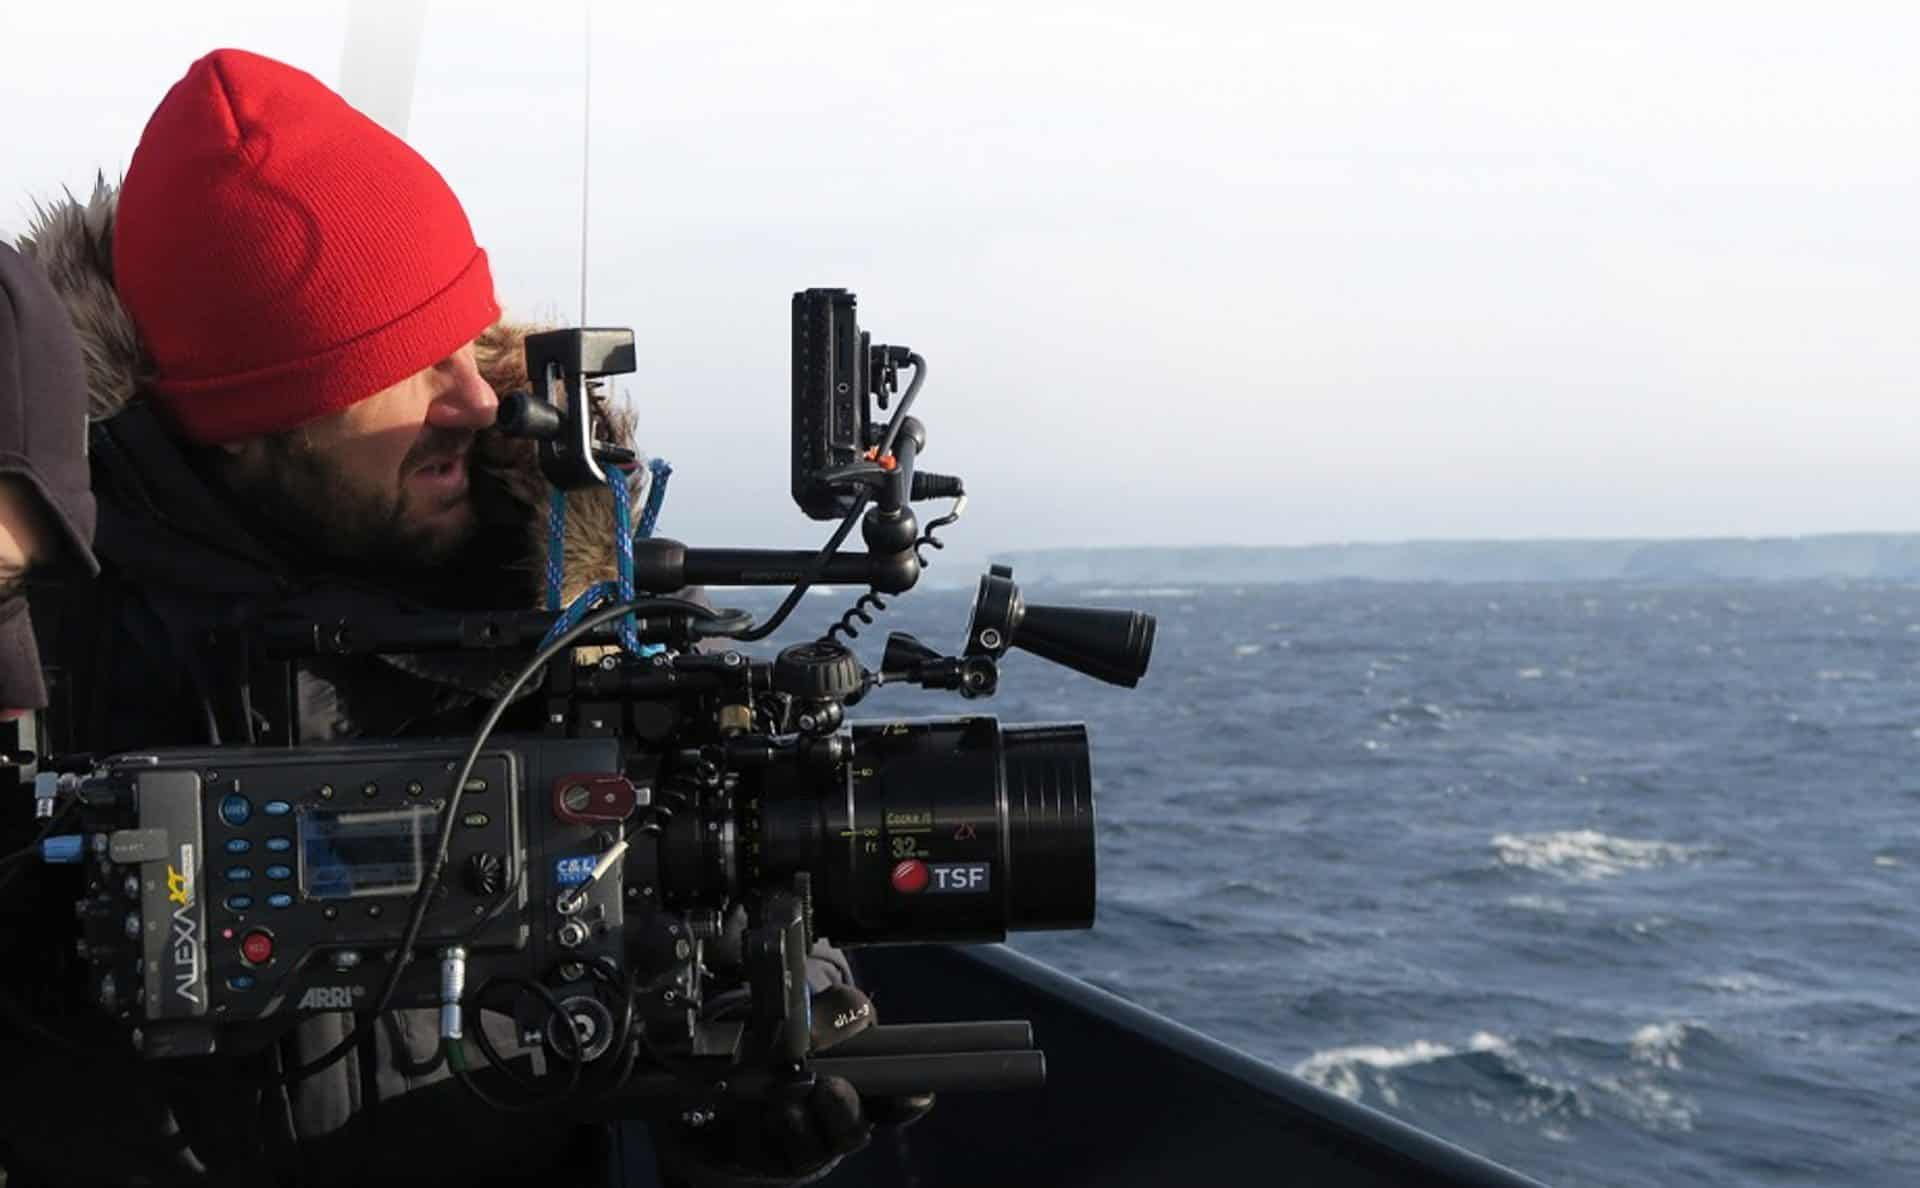 Cooke... Matias Boucard using the 32 Anamorphic on the Odyssey